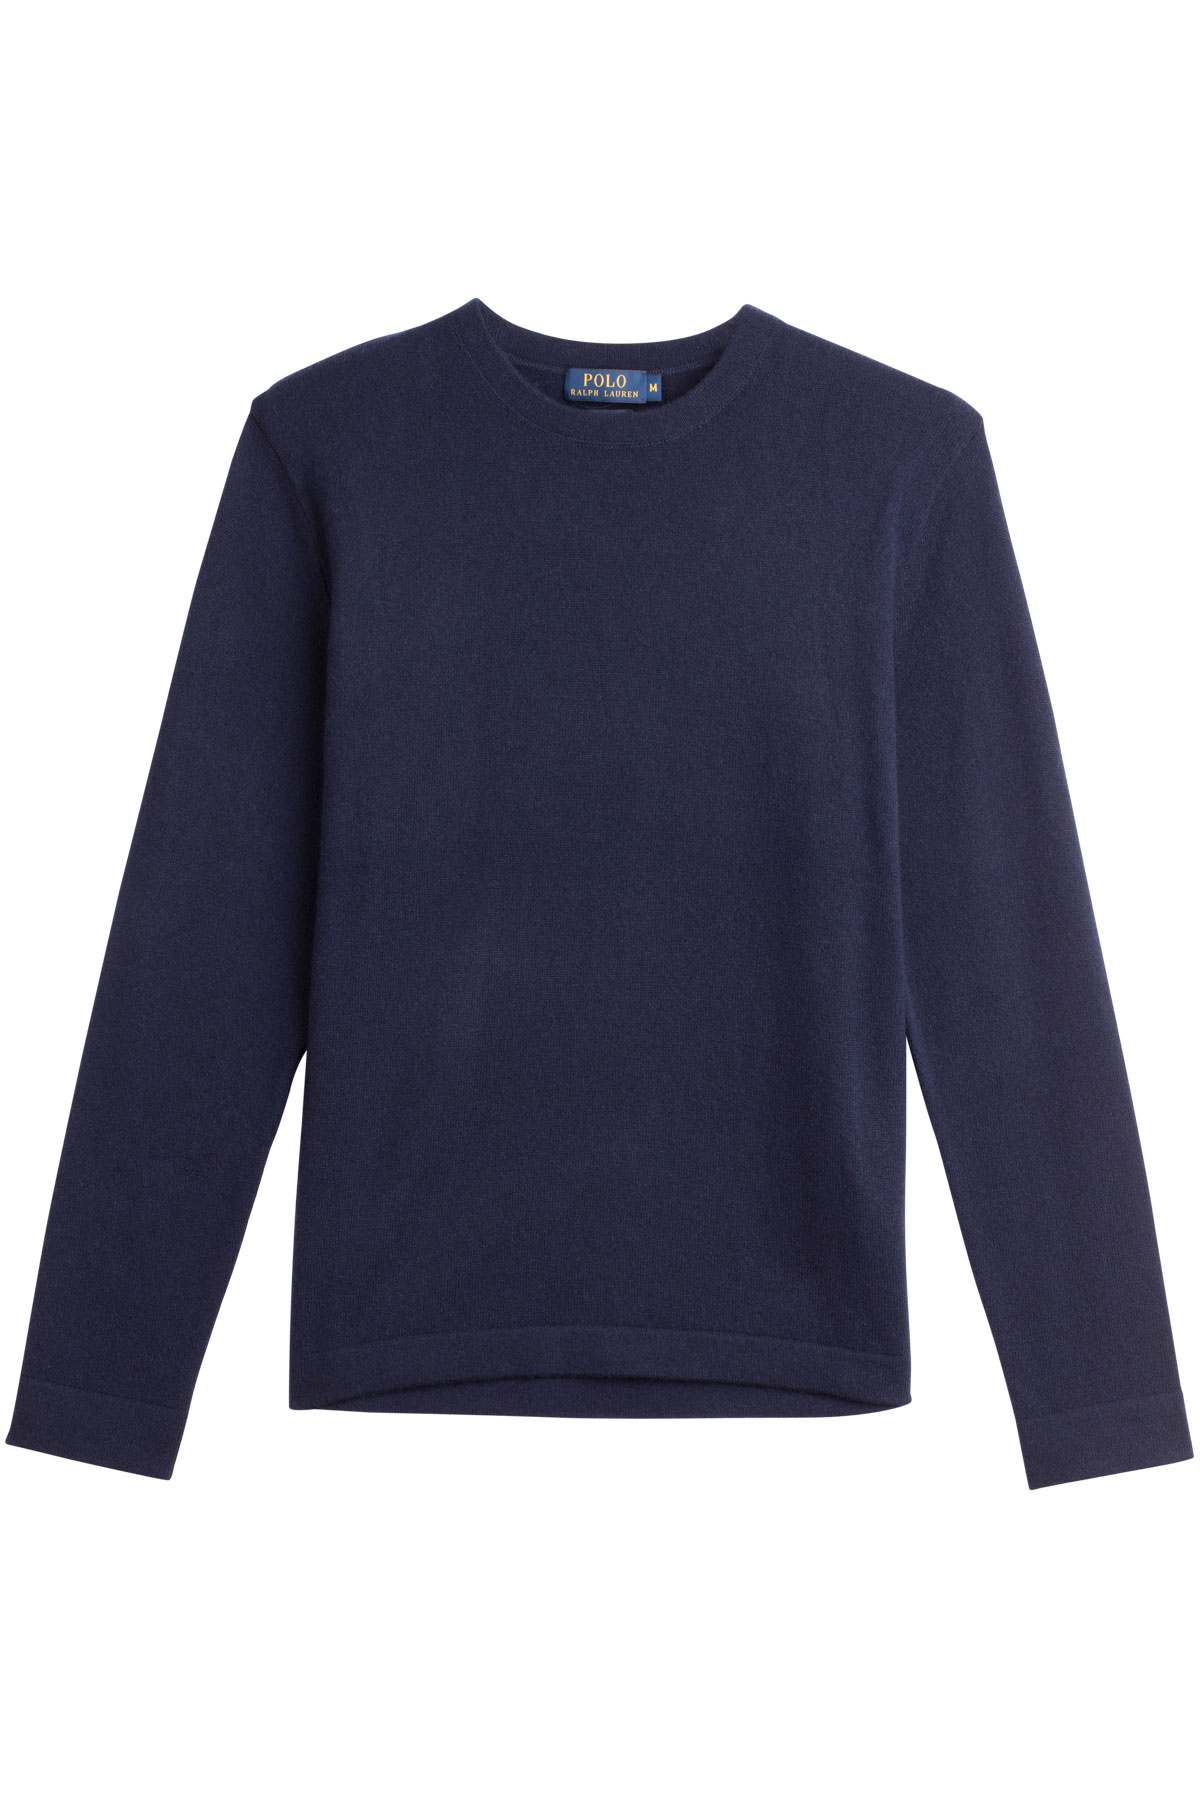 polo ralph lauren cashmere pullover blue in blue for men. Black Bedroom Furniture Sets. Home Design Ideas